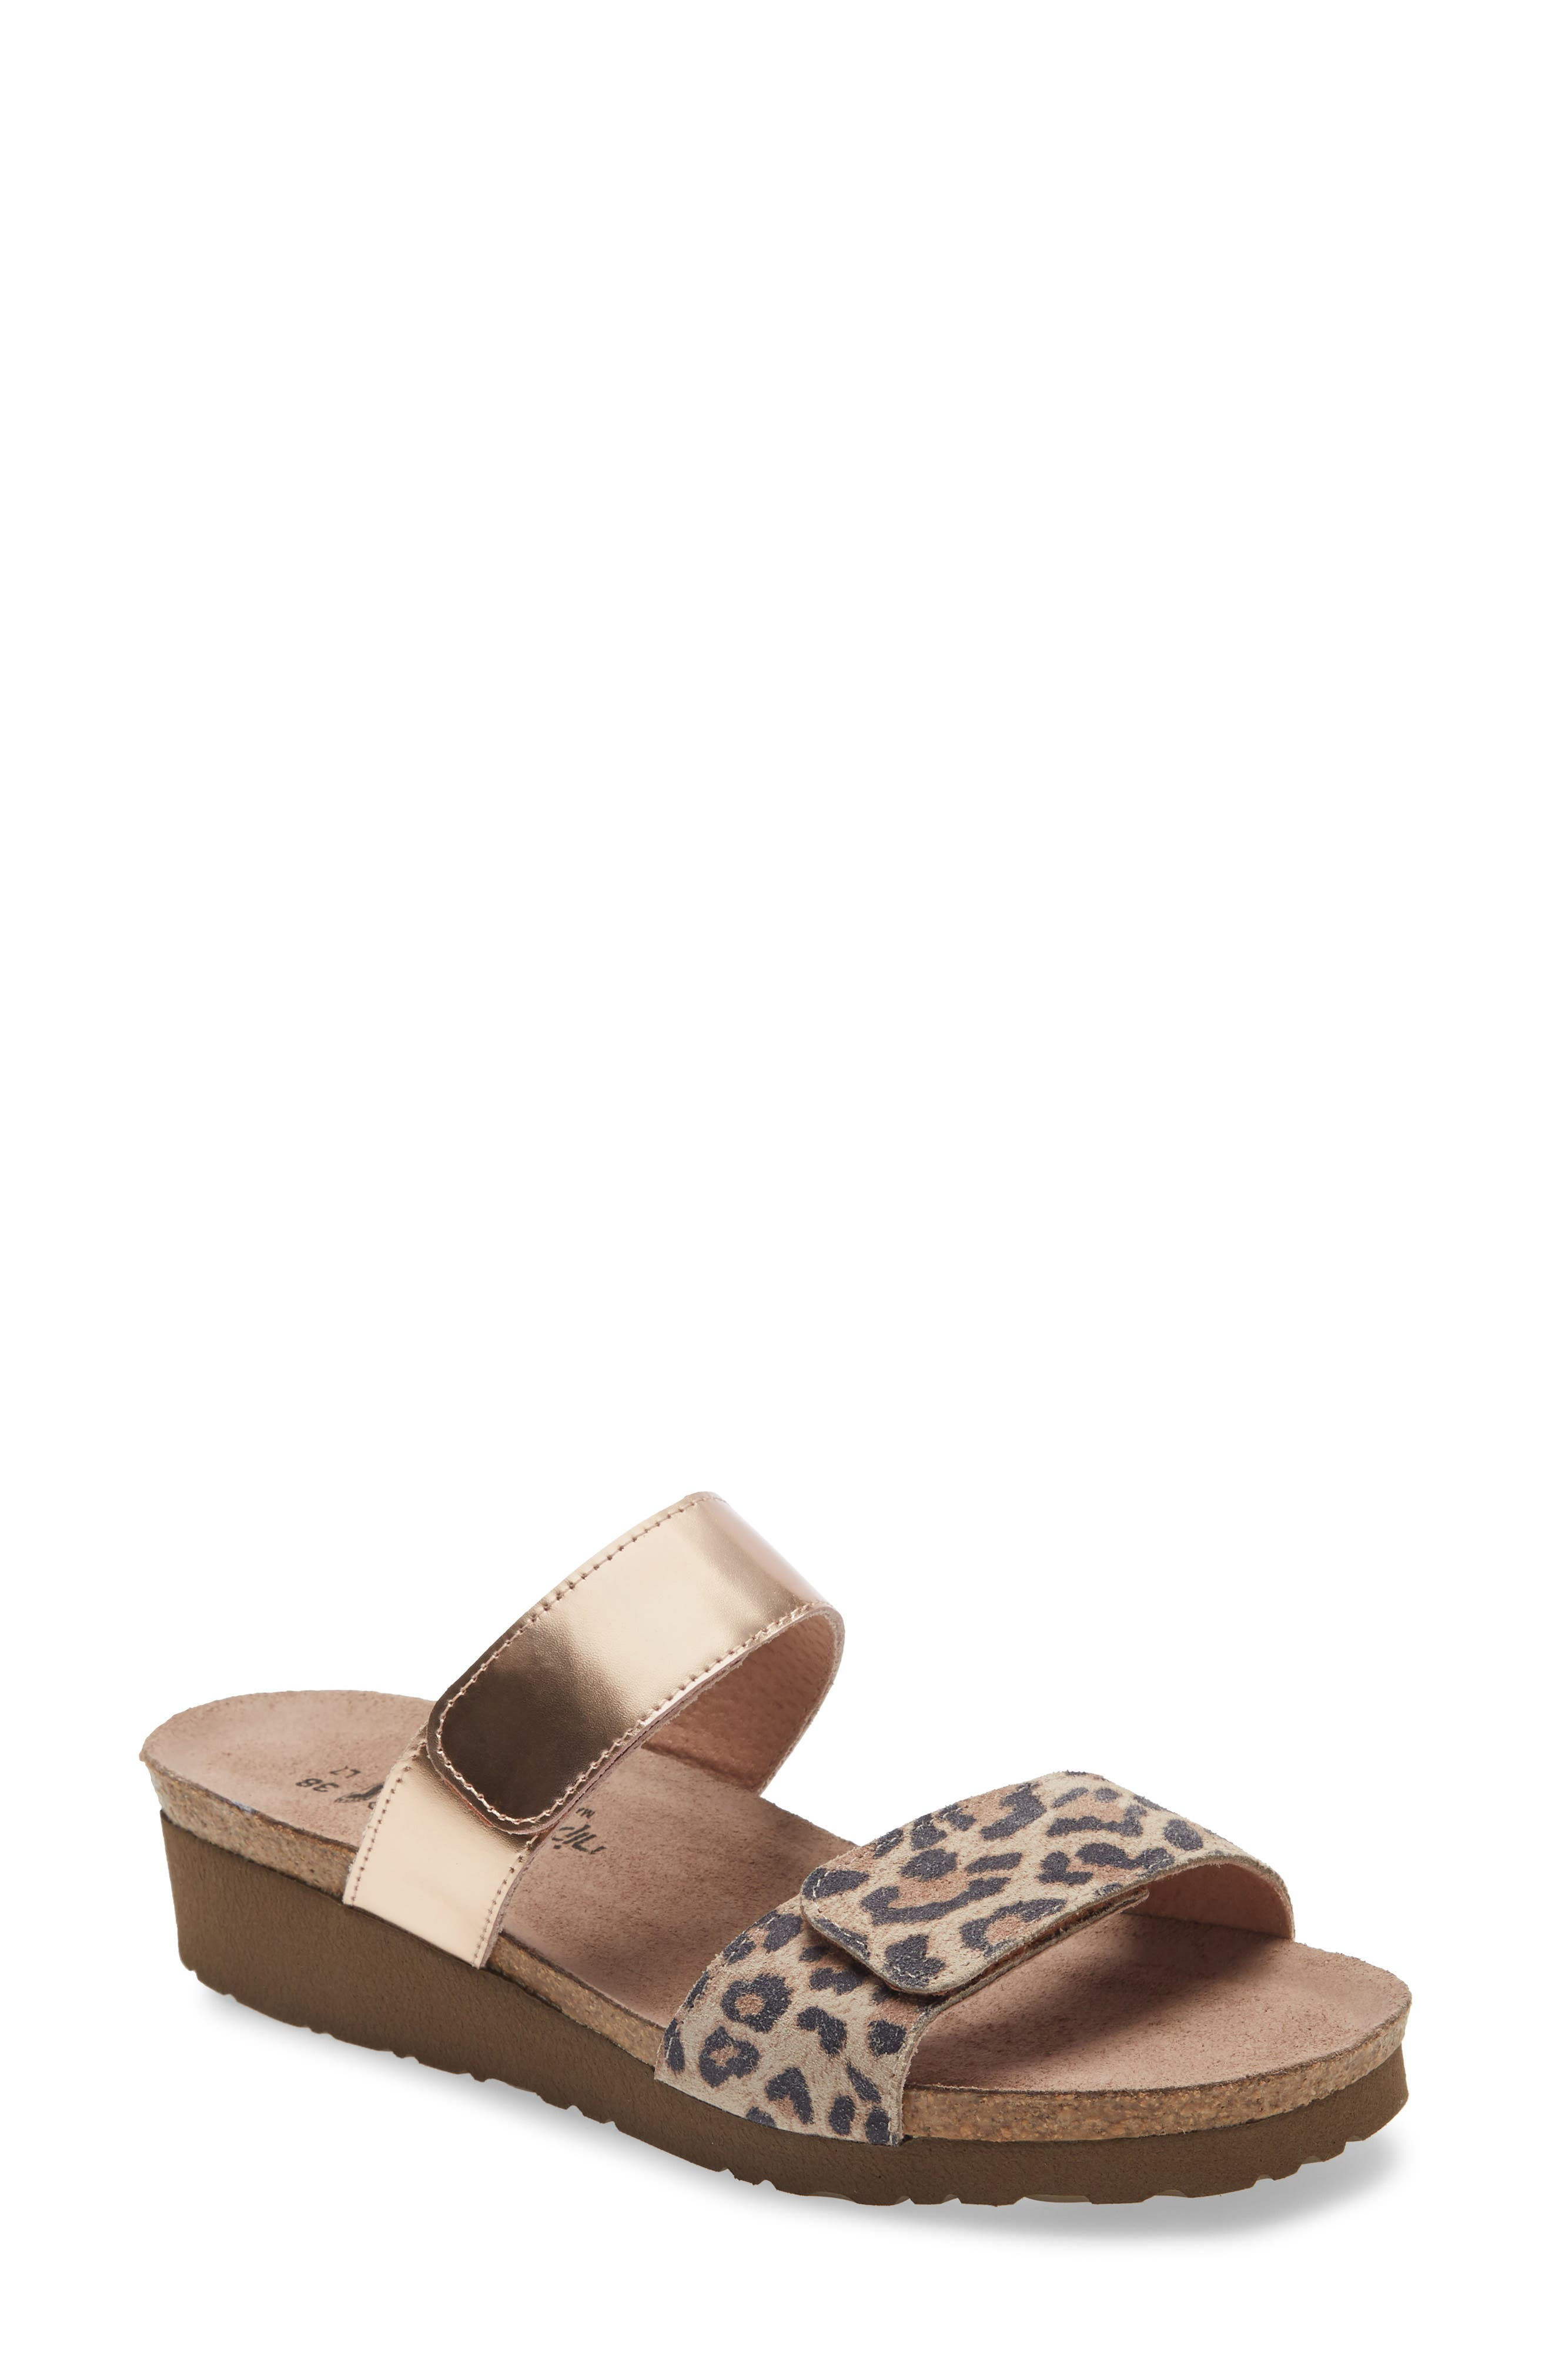 Women's Naot Shoes | Nordstrom